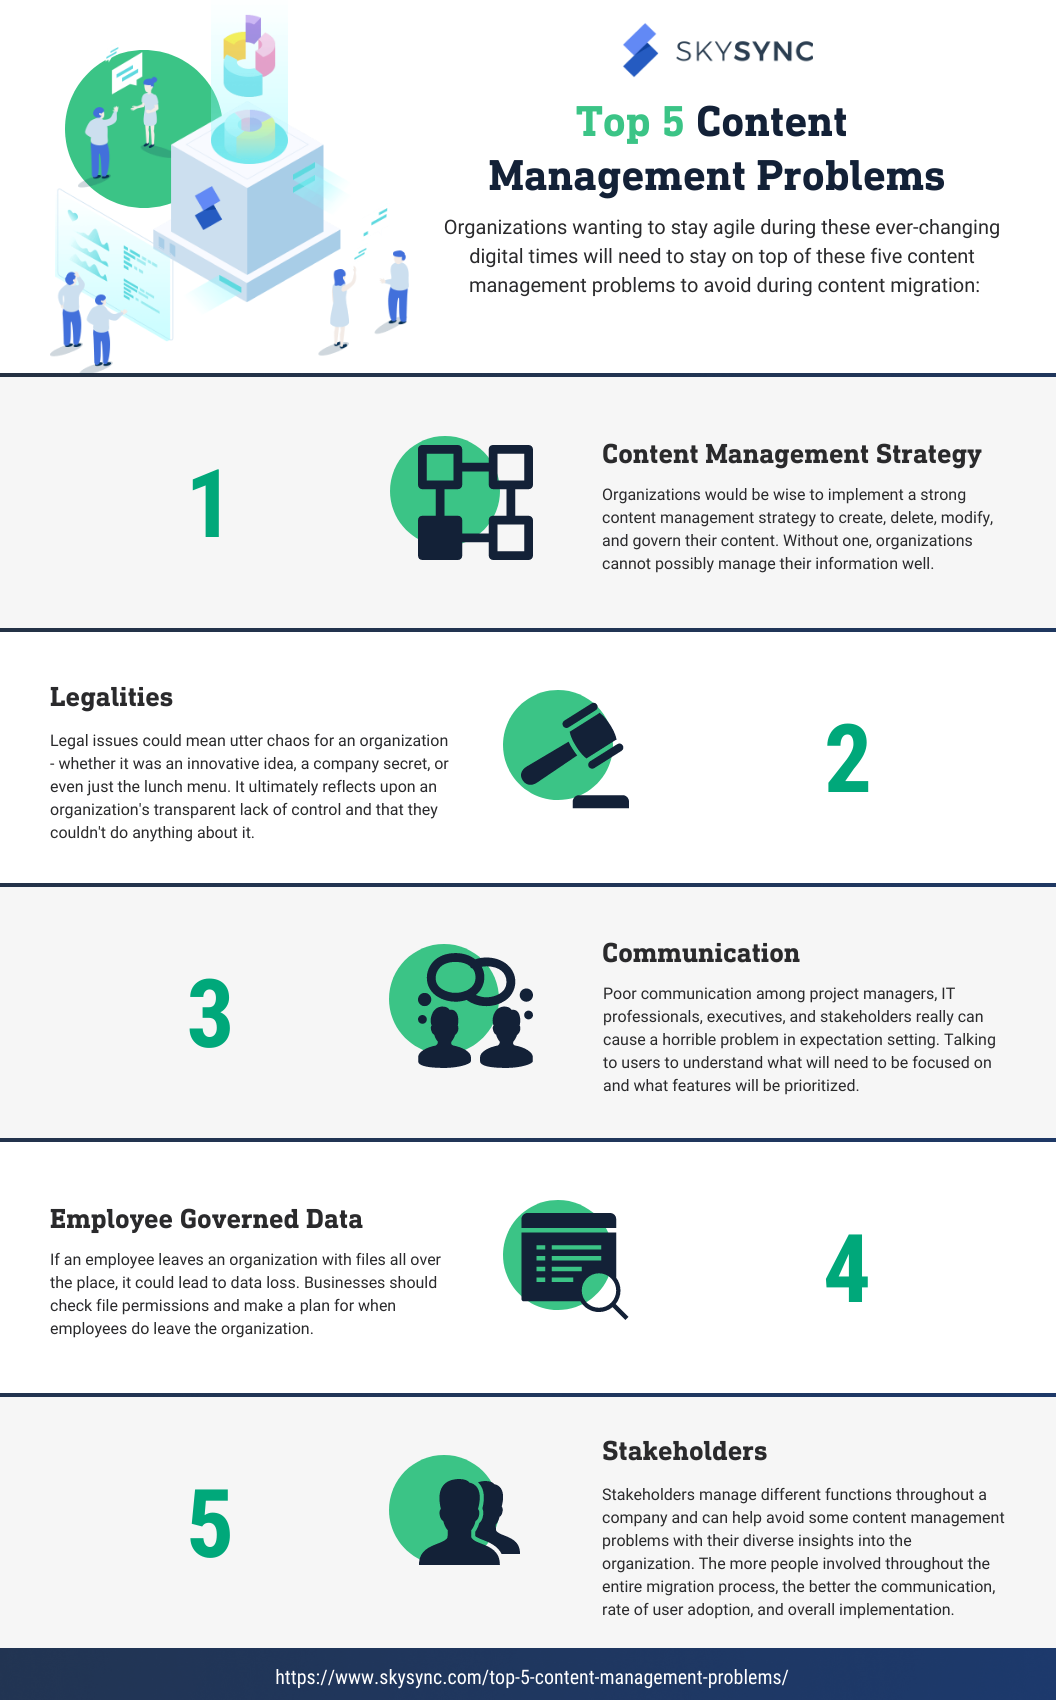 Top 5 Content Management Problems Infographic